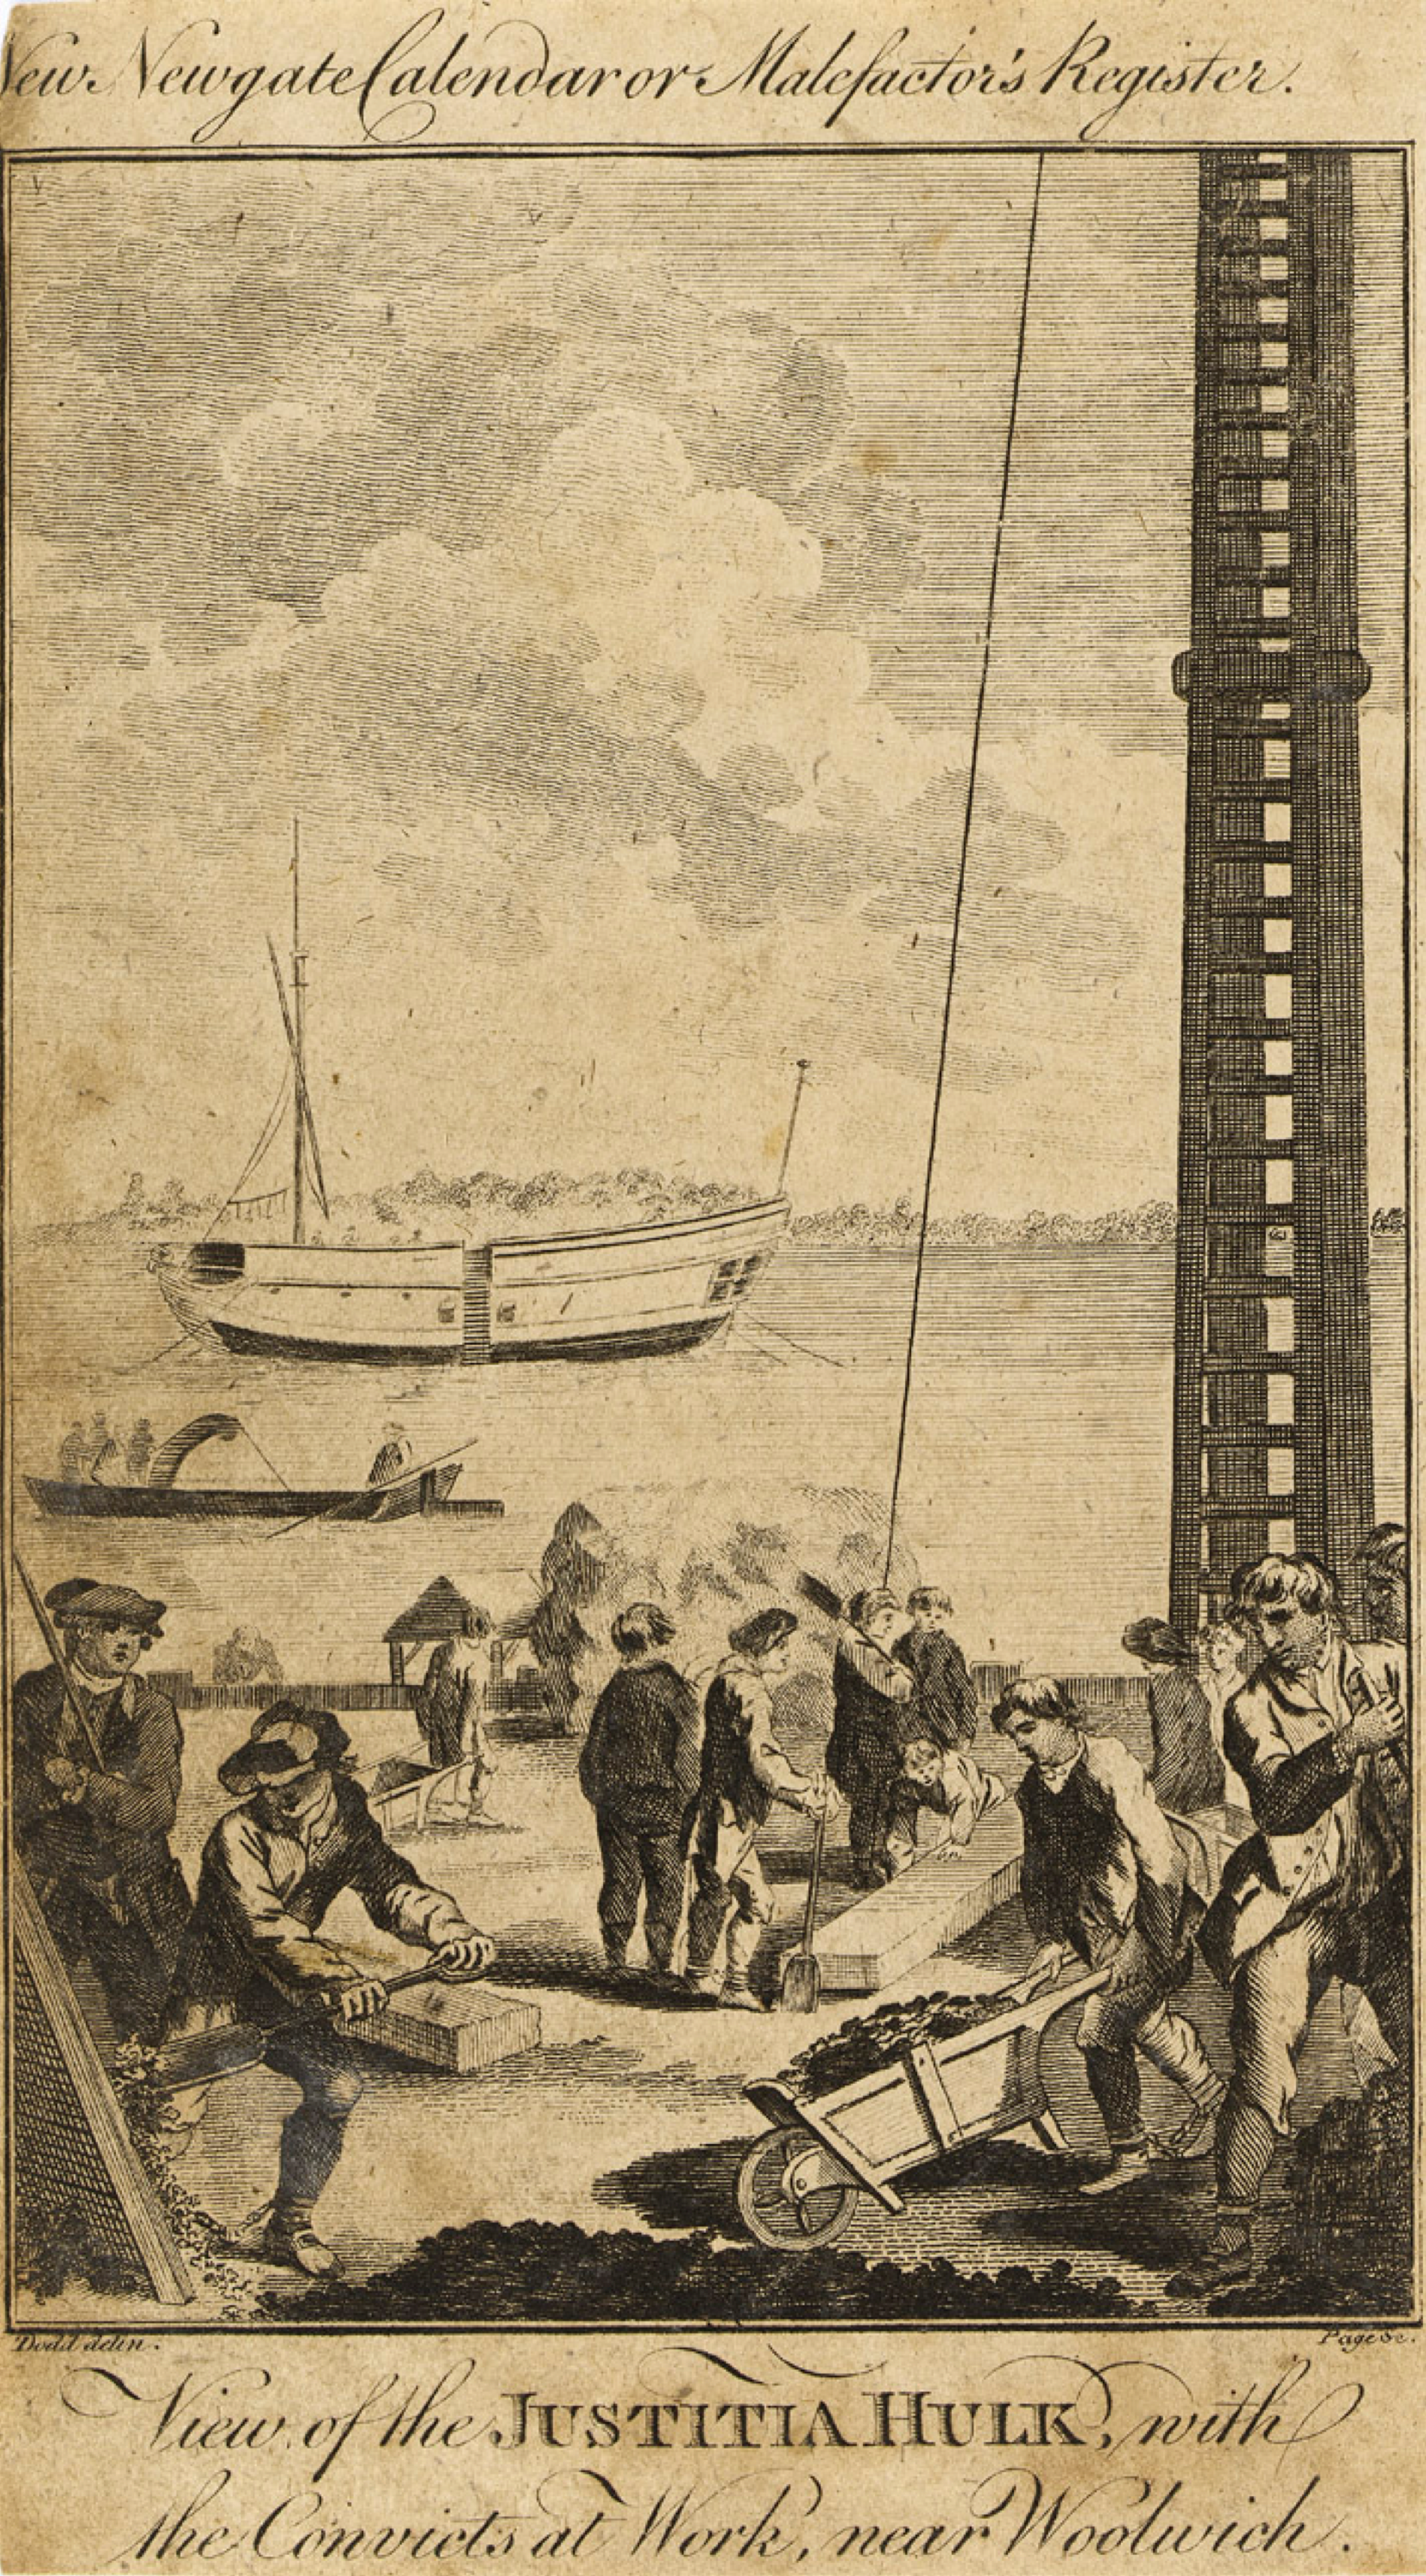 Convicts at Work near Woolwich